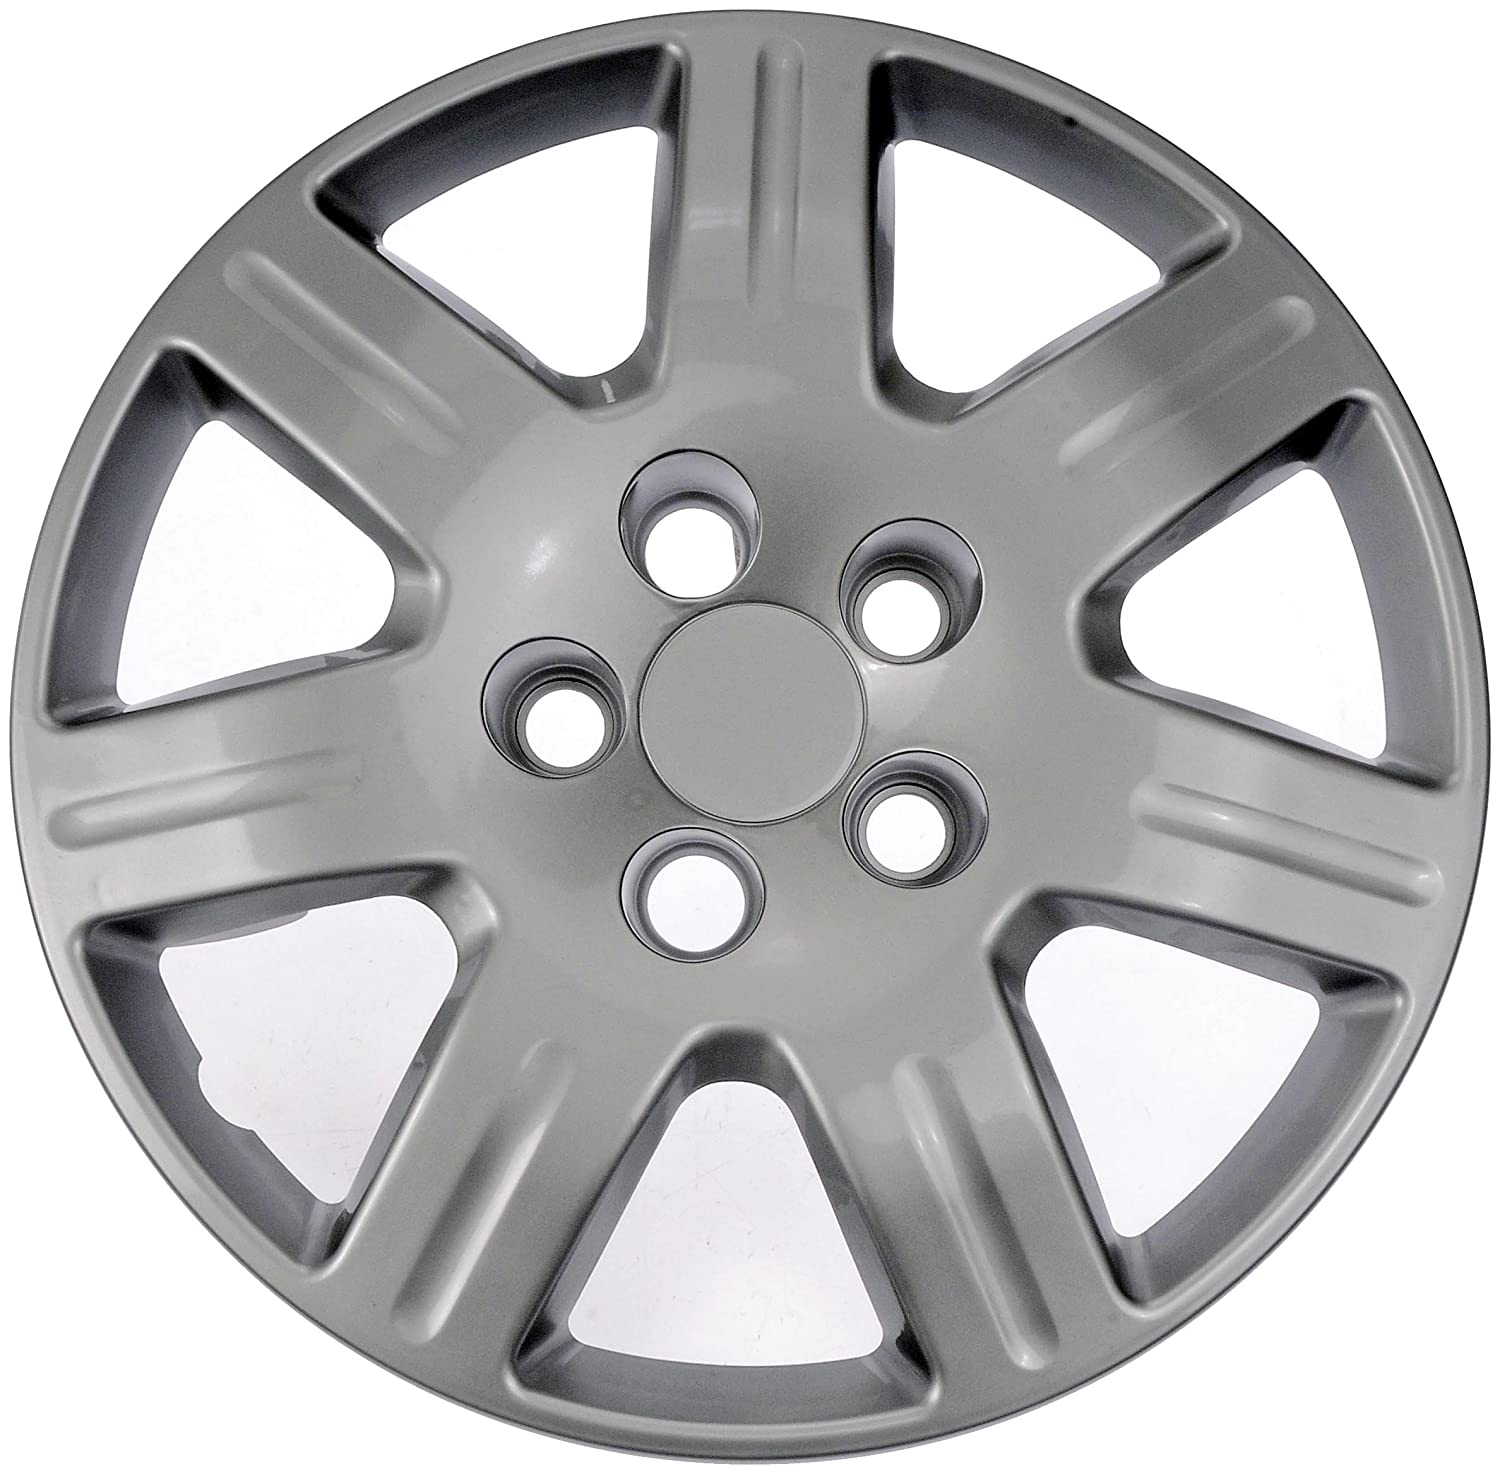 Dorman 910-110 Honda Civic 16 inch Wheel Cover Hub Cap Dorman - Autograde